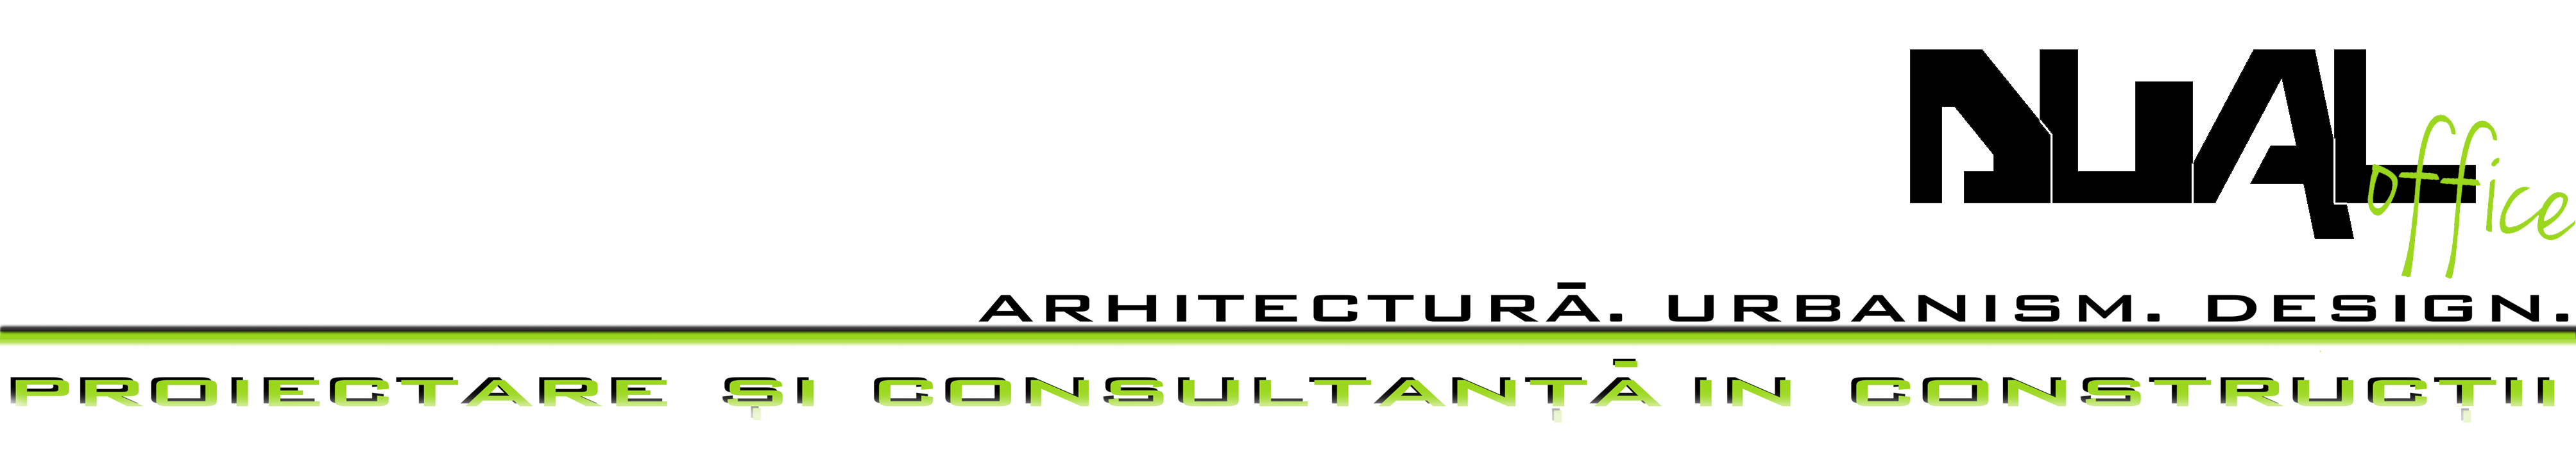 Dual Office Logo